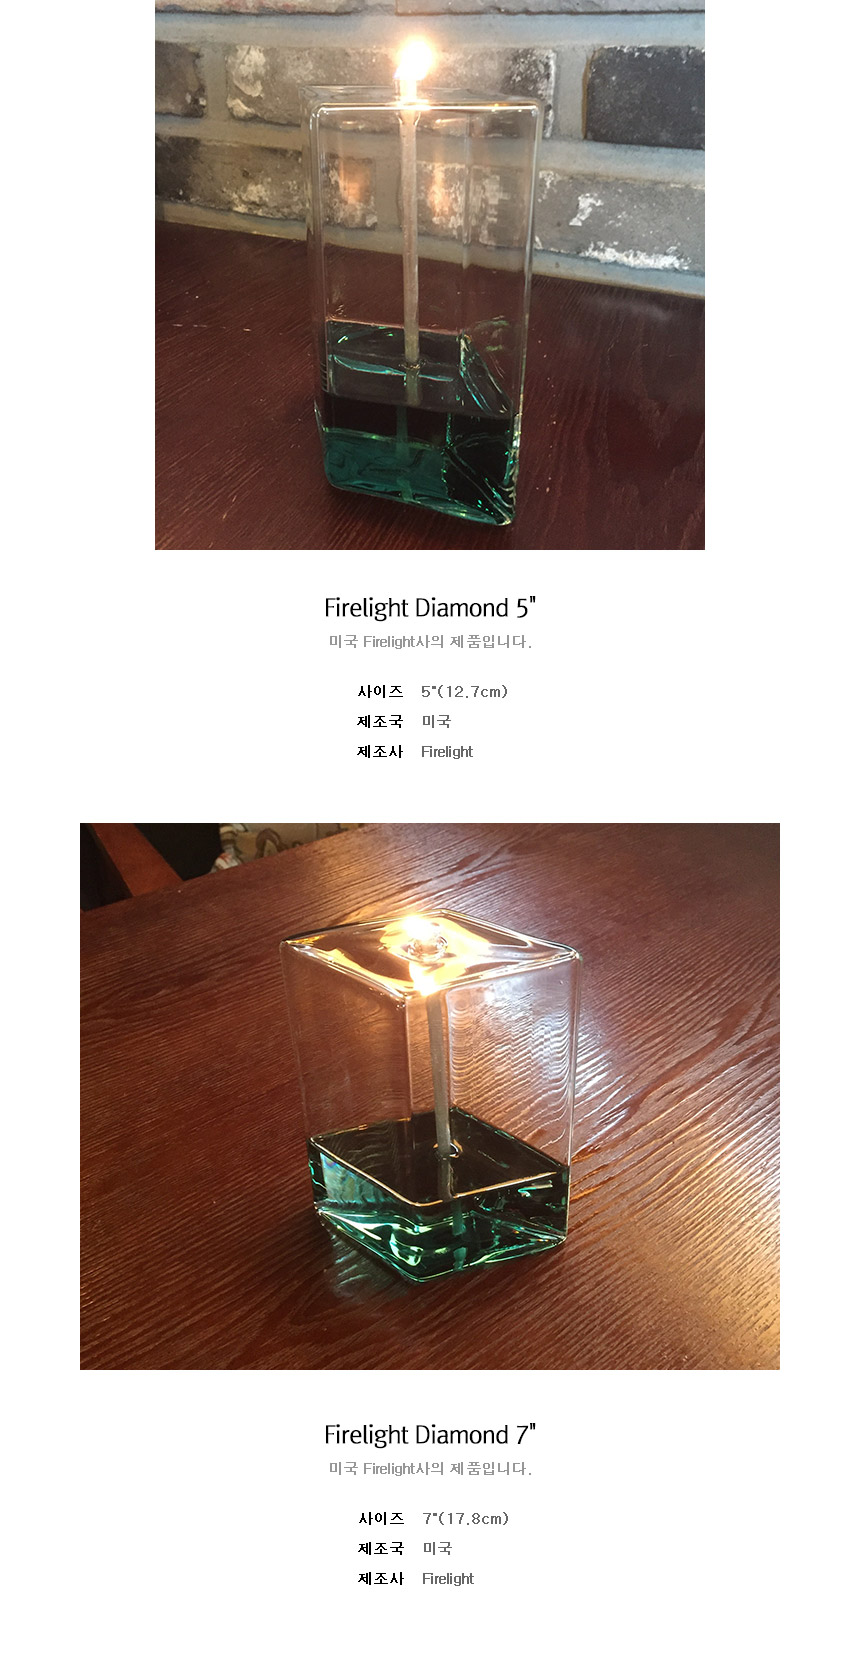 램프플러스 Firelight Diamond